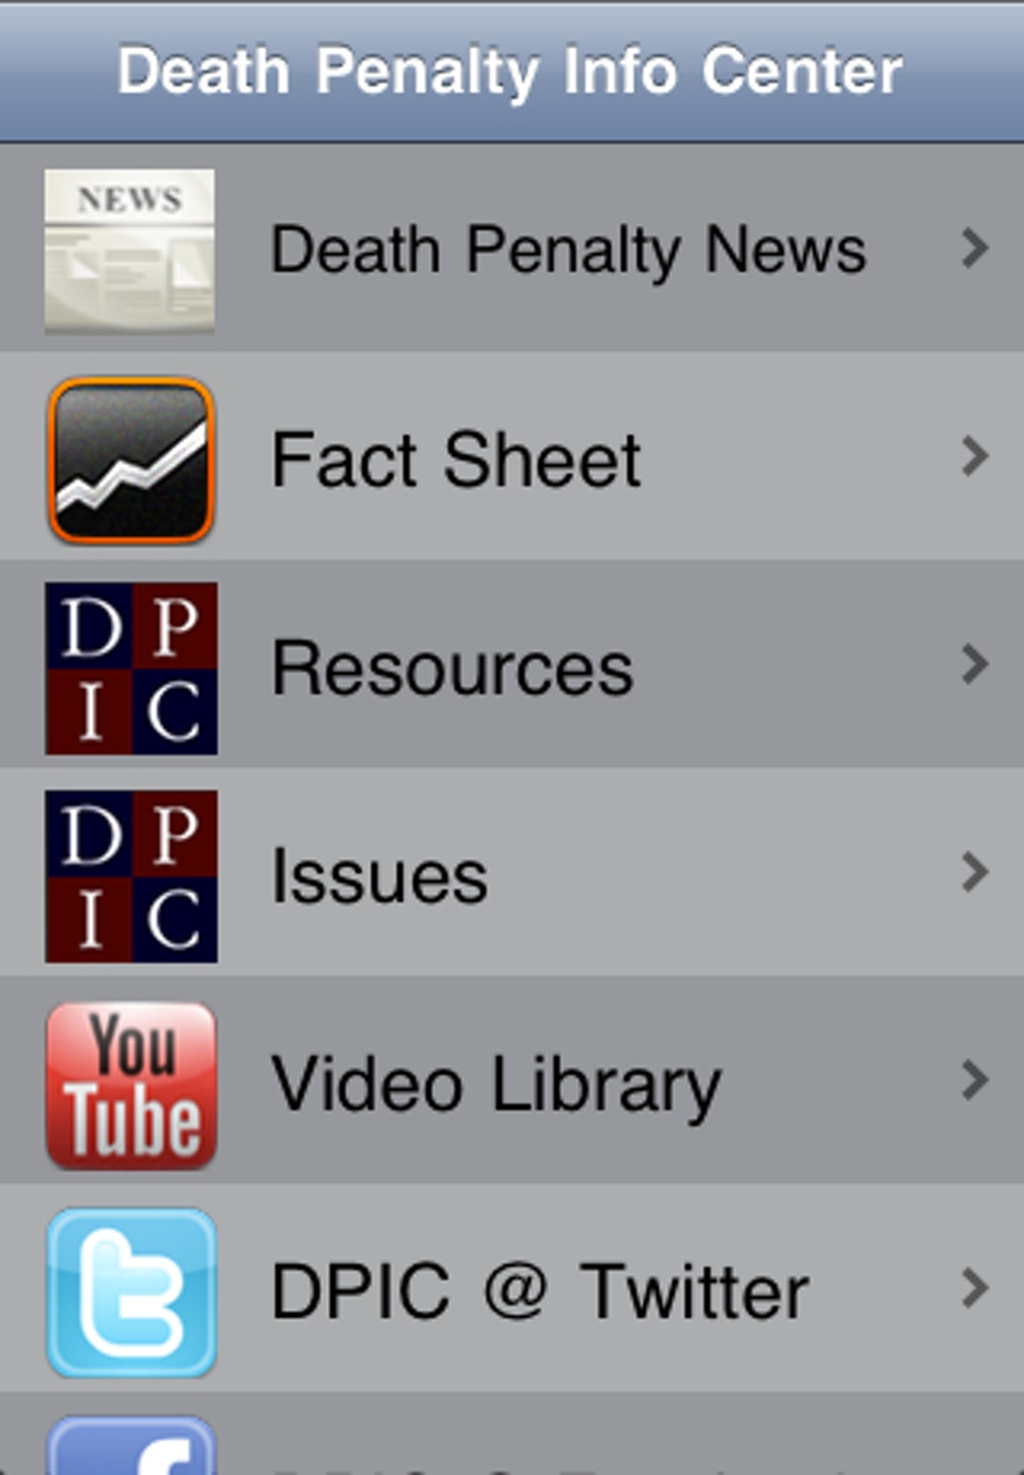 NEW RESOURCES: DPIC Introduces App for iPhone and iPad